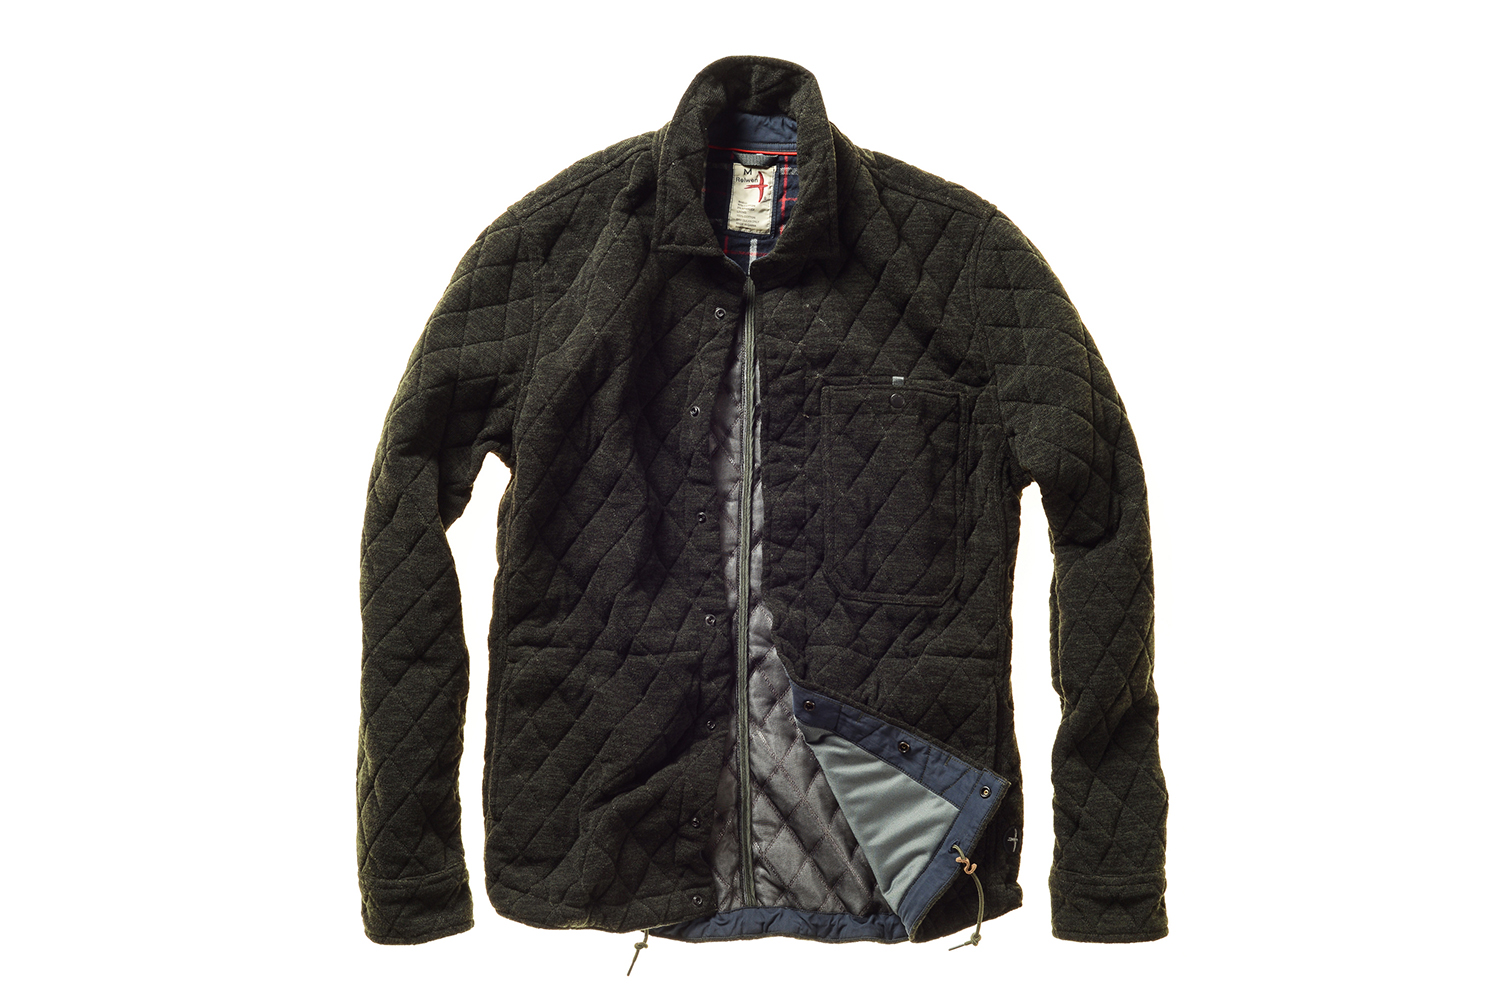 Relwen Knit Jacquard Snap CP Shirt Jacket